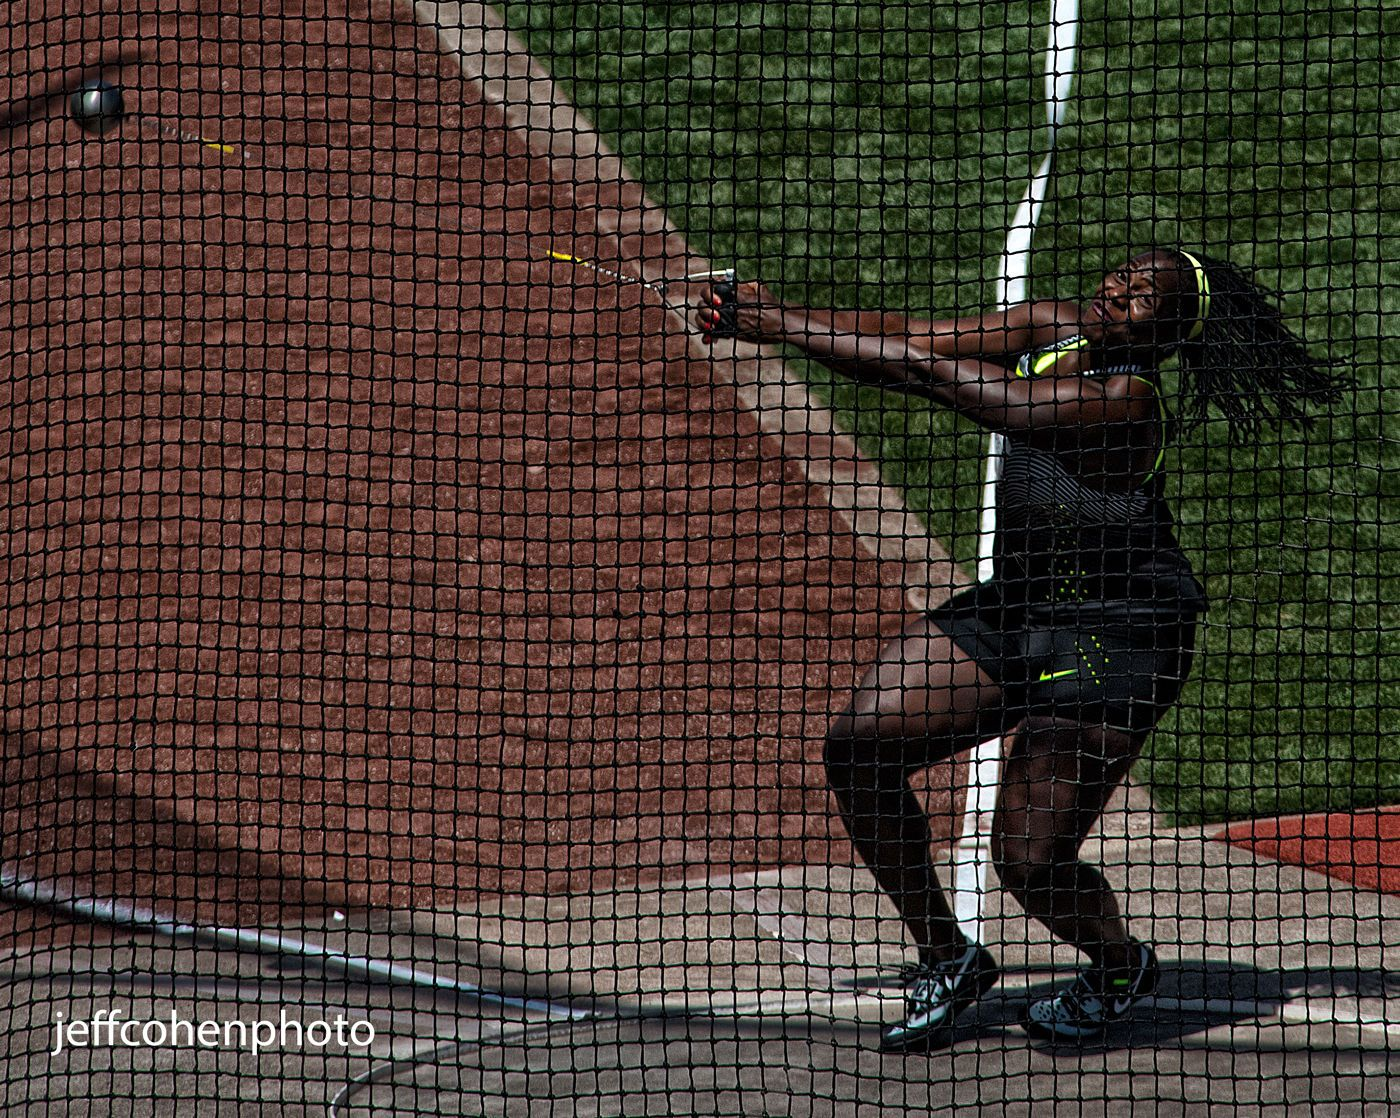 1r2016_oly_trials_day_5_amber_campbell_hammer_w_jeff_cohen_photo_18238_web.jpg